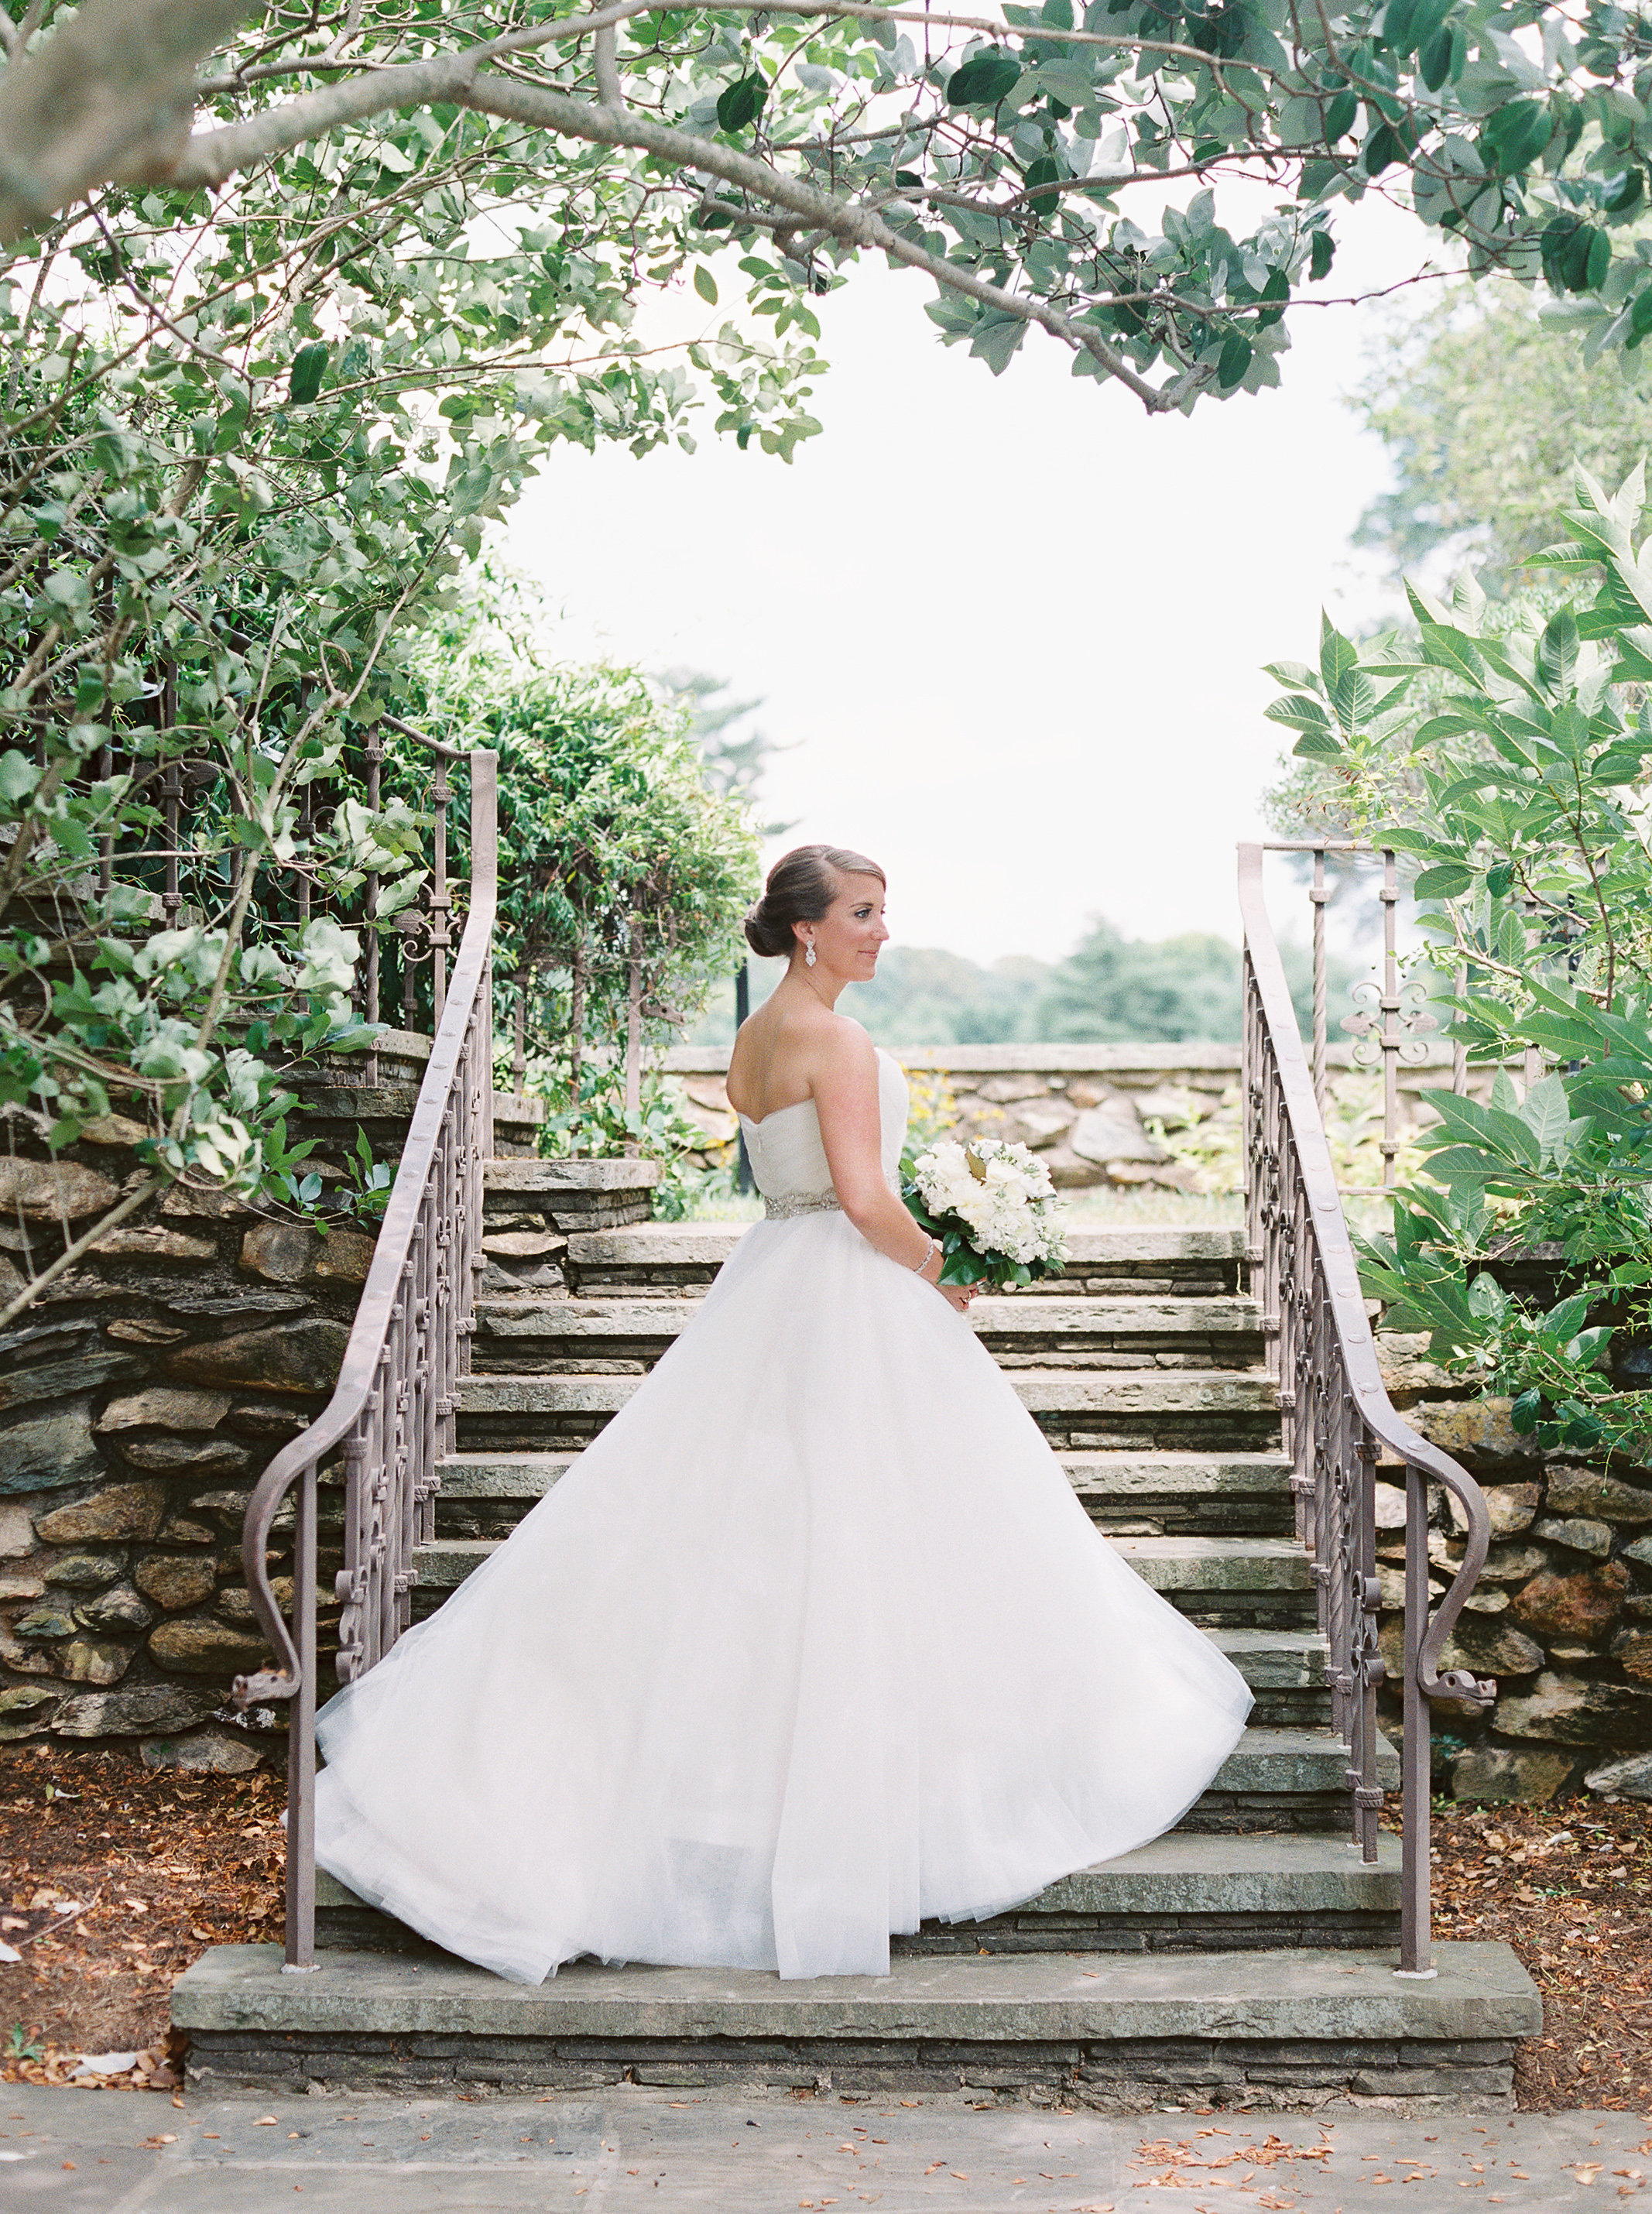 Wedding Day at The Graylyn Estate